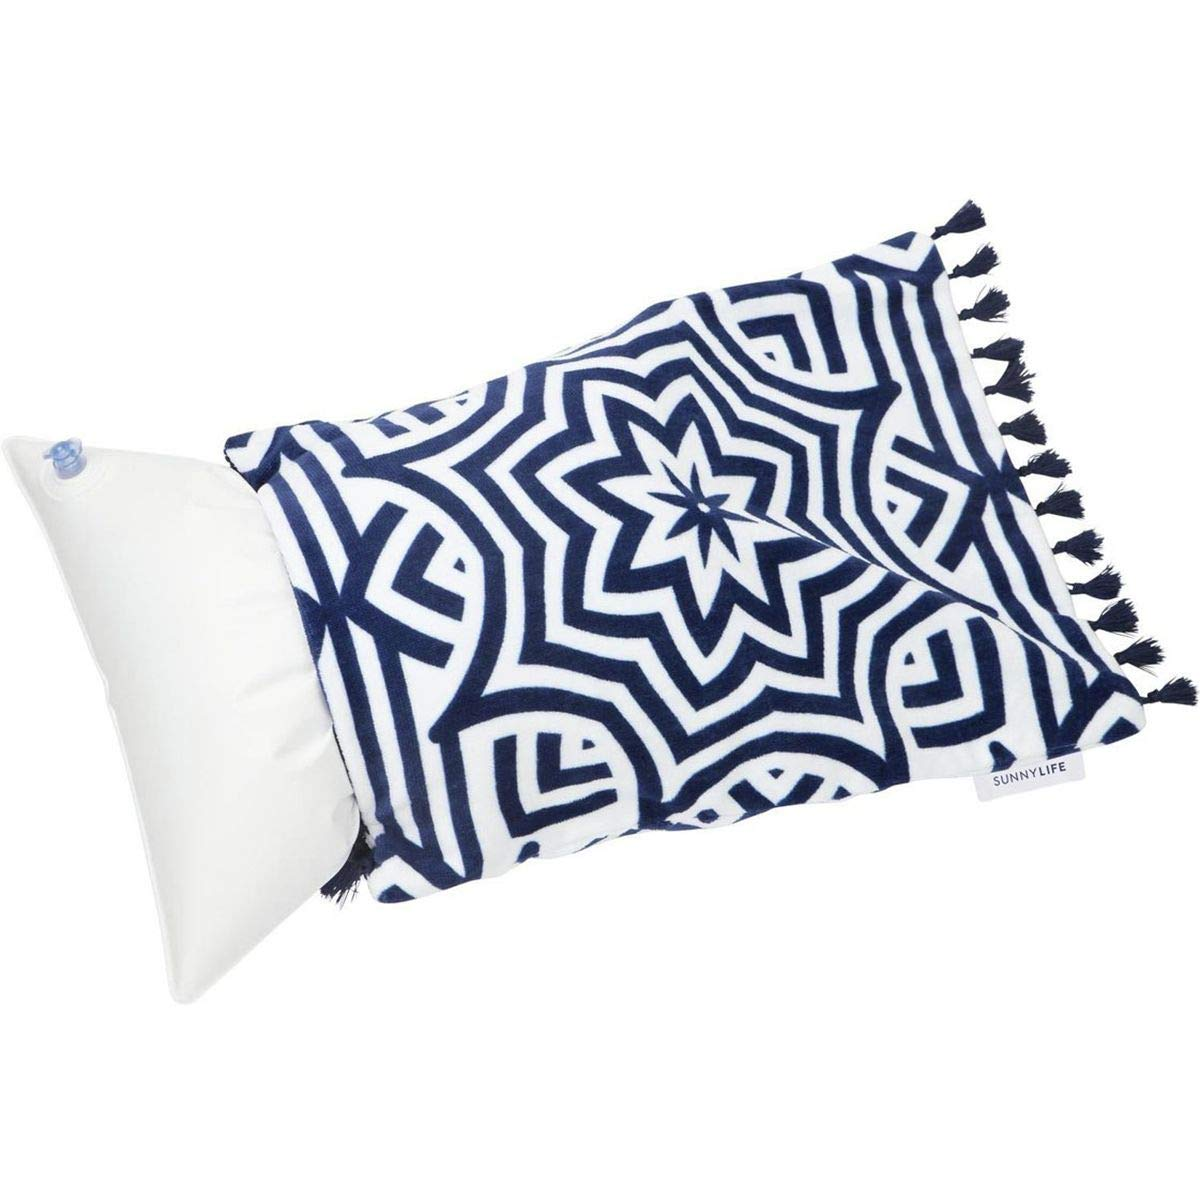 SunnyLIFE Beach Inflatable Air Pillow with Plush Cover for Sunbathing